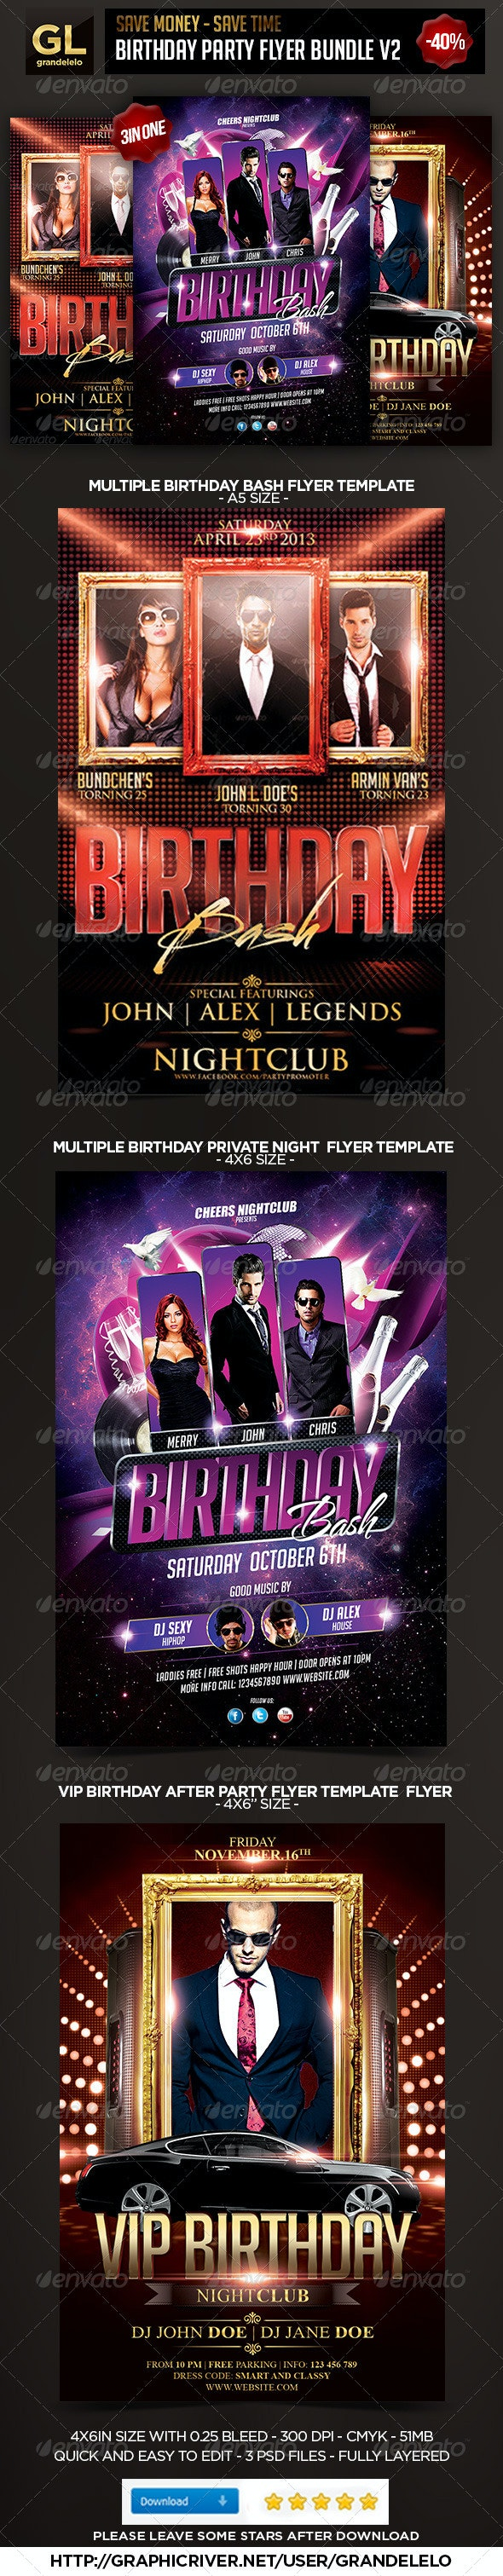 Birthday Flyer Bundle 2.0 - Clubs & Parties Events